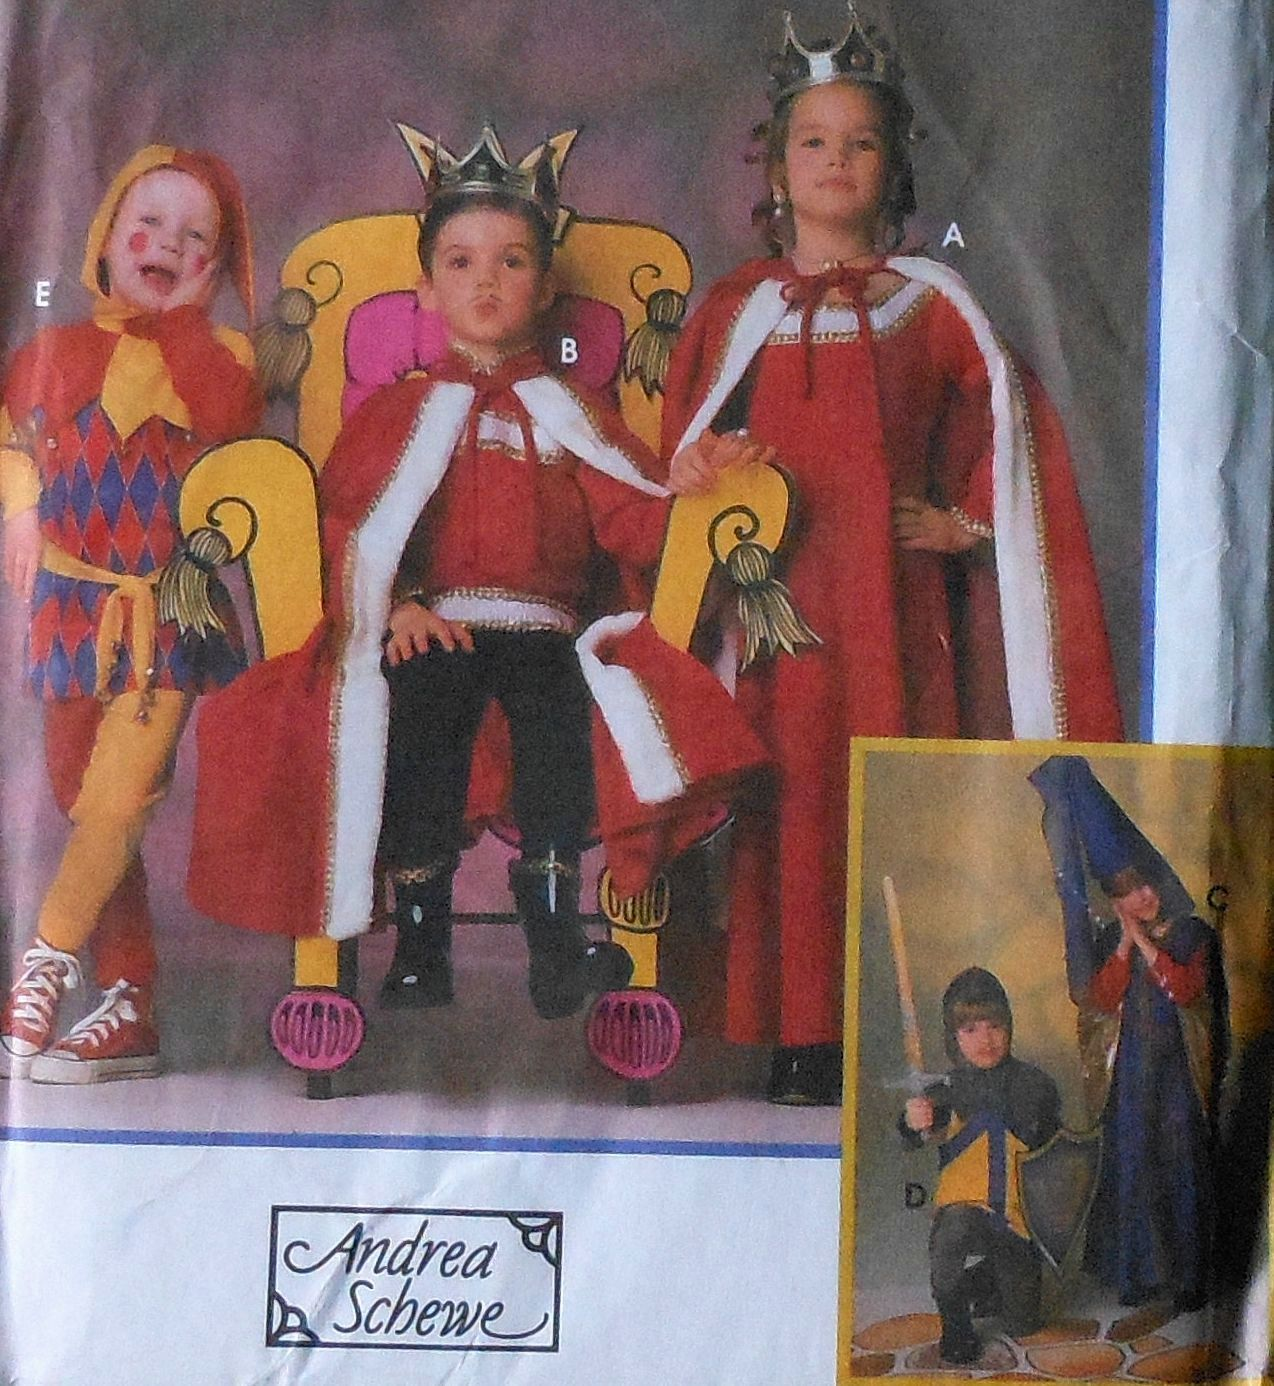 Medieval king queen knight princess jester costume sewing pattern medieval king queen knight princess jester costume sewing pattern jeuxipadfo Choice Image